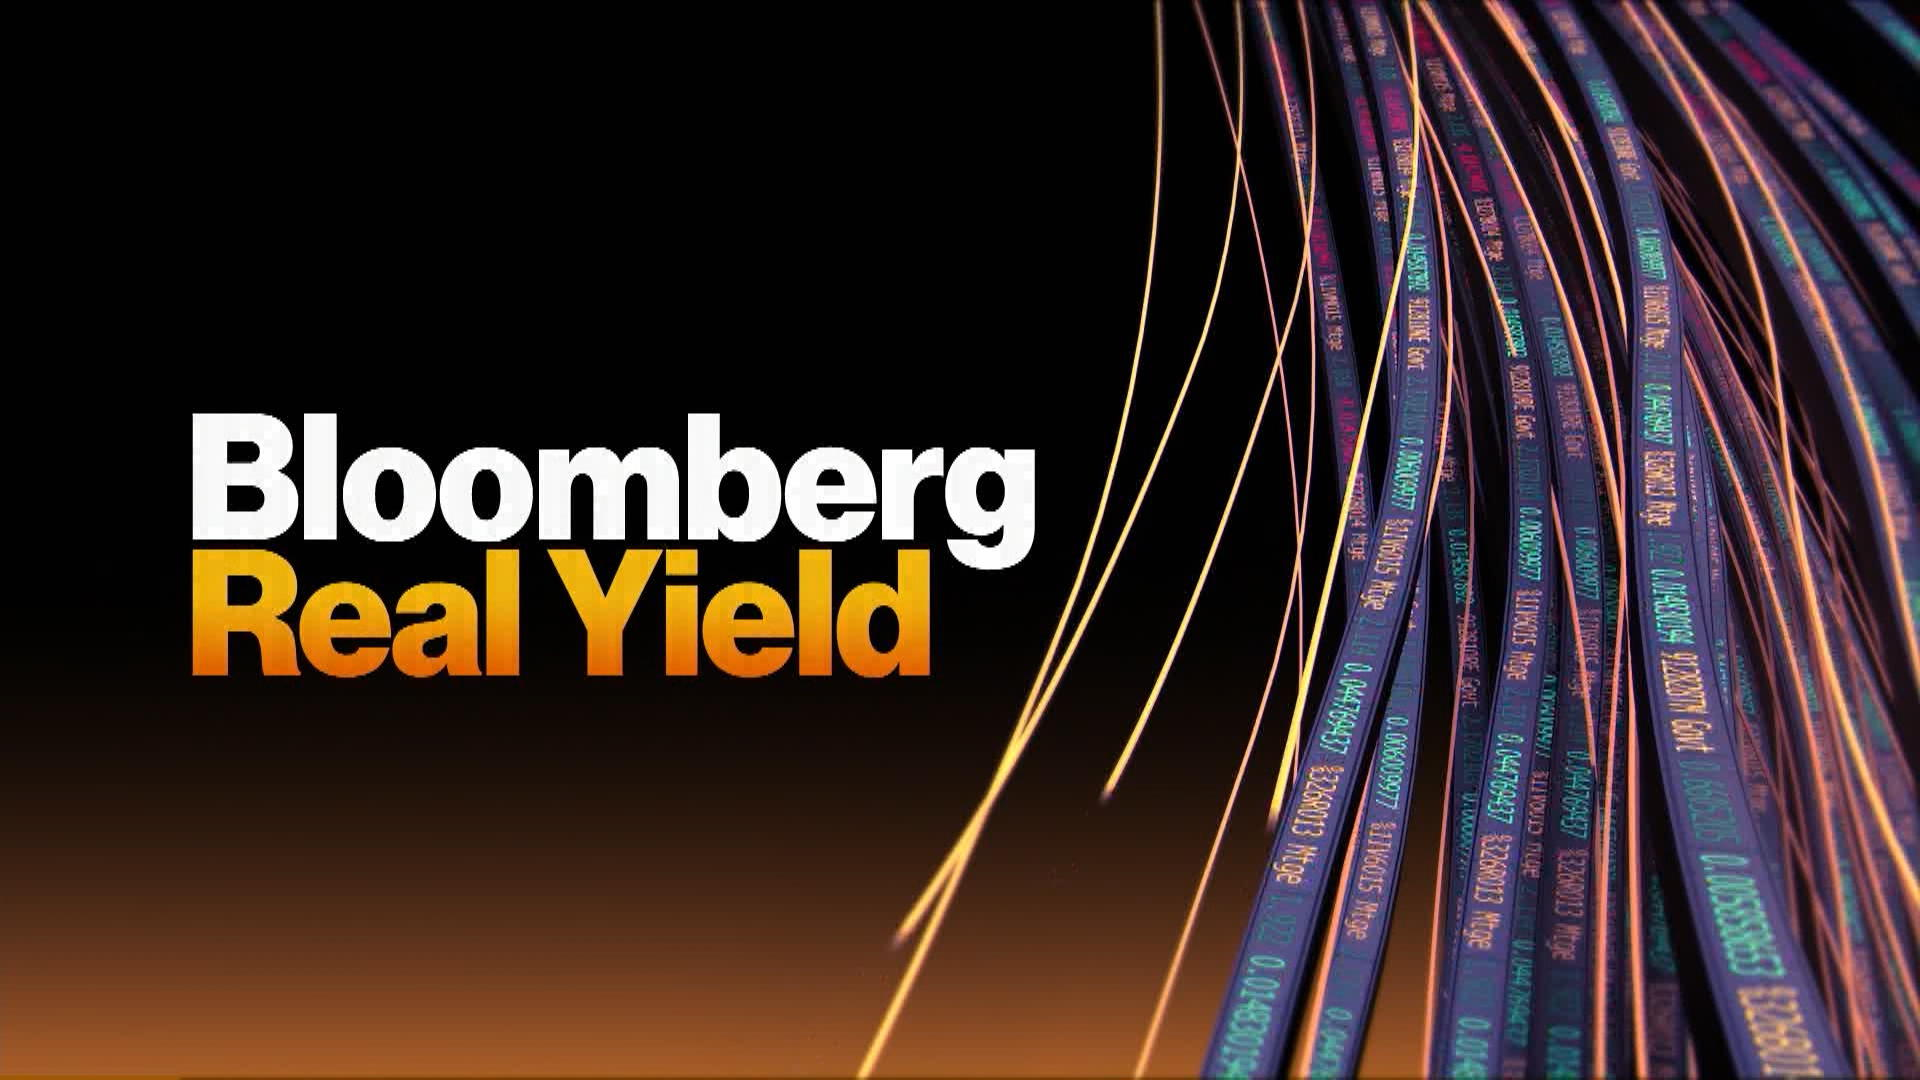 'Bloomberg Real Yield' Full Show (12/13/2019)